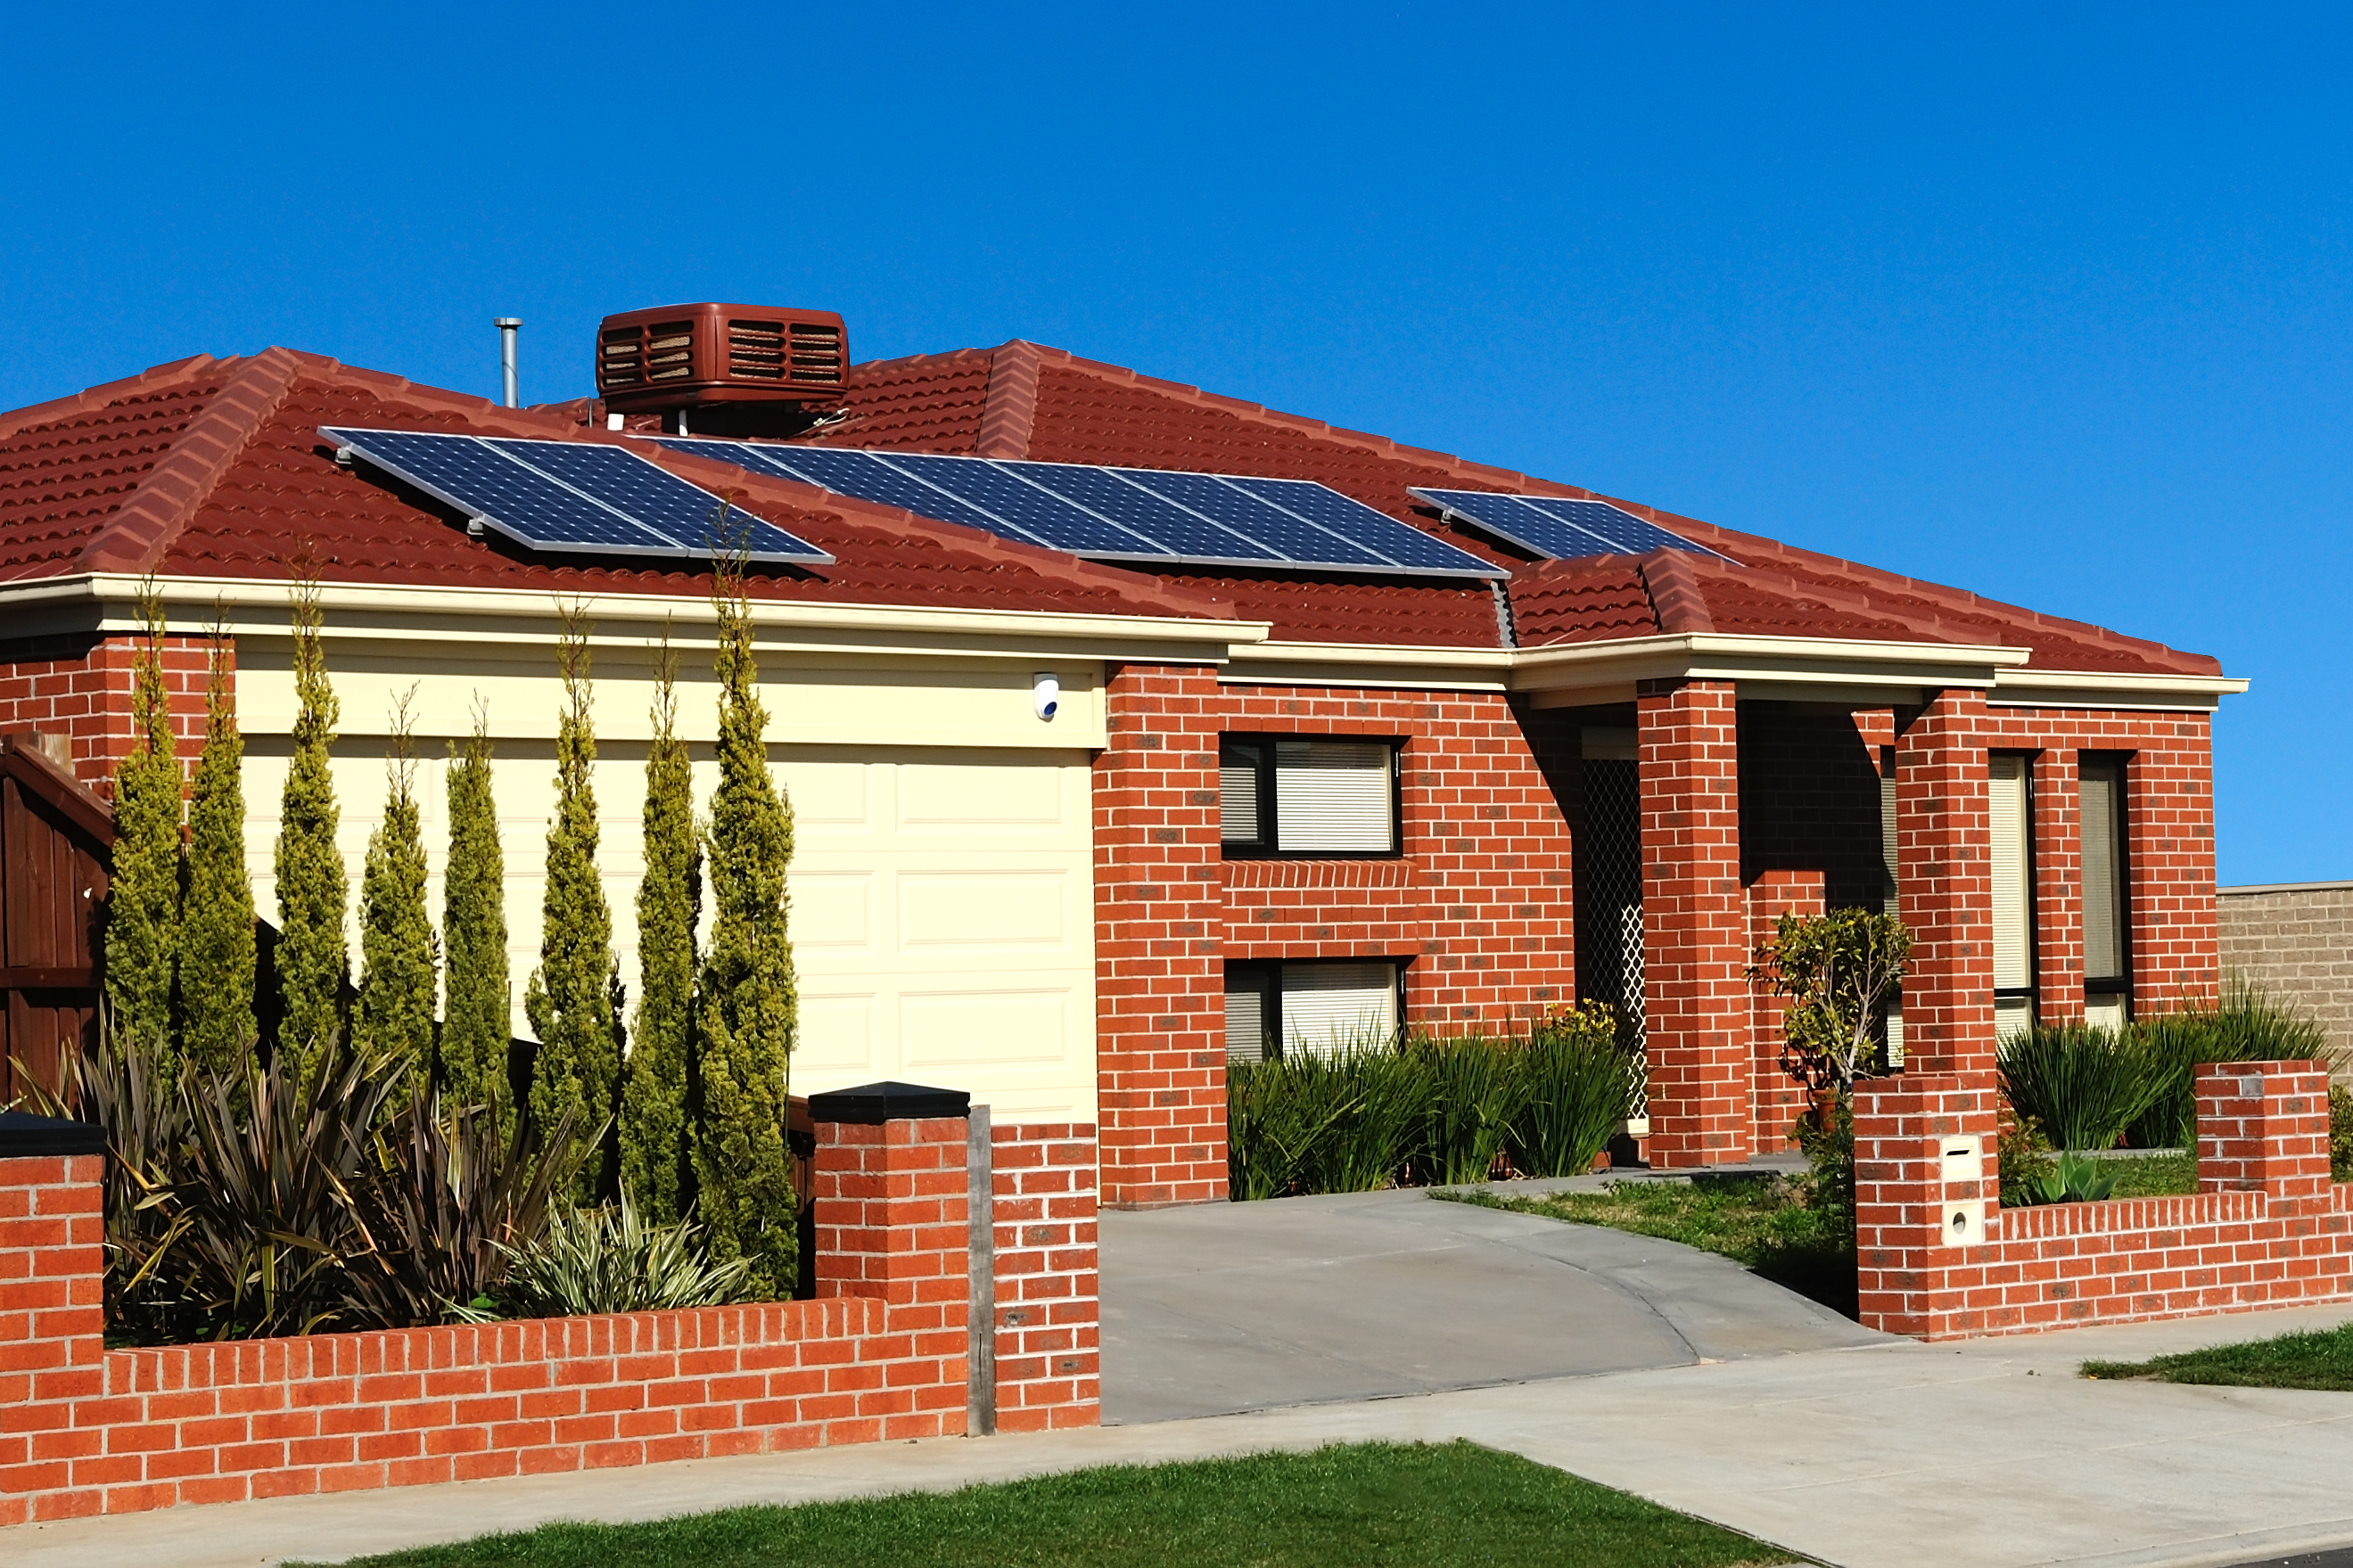 Grid-Tied, Off-Grid, or Hybrid: Which Solar System is Right for You?